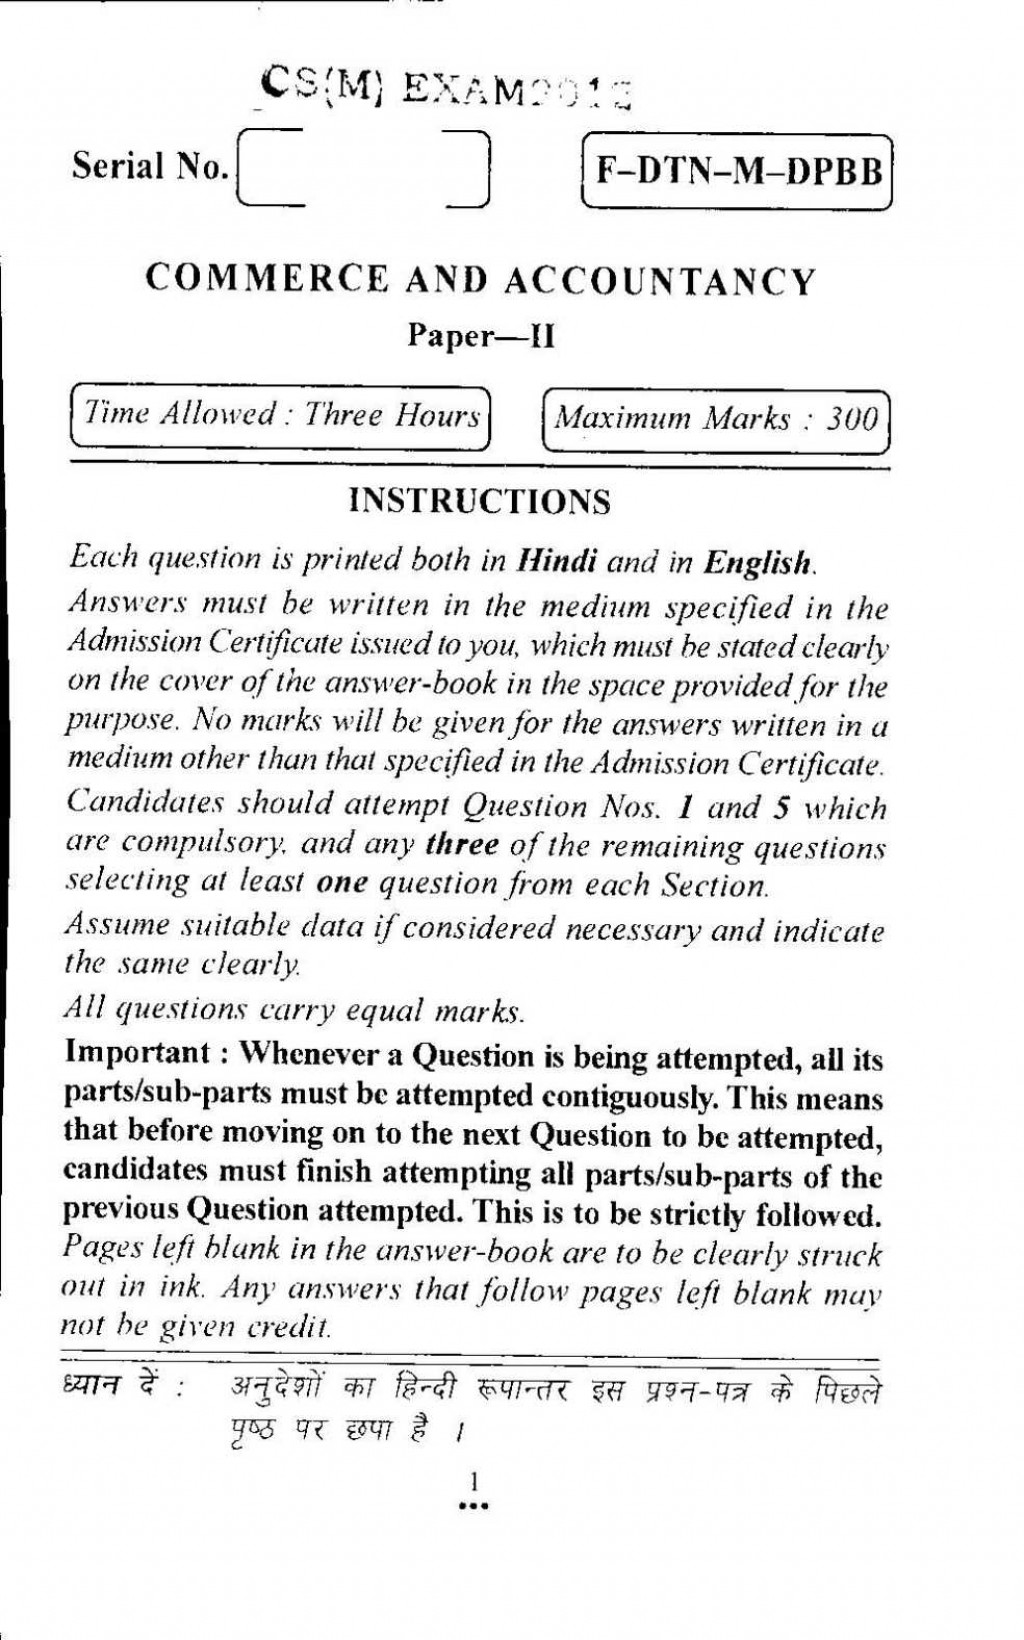 012 American Essay Civil Services Examination Commerce And Accountancy Paper Ii Previous Years Que Striking Dream Scholarship Native Titles Style Large